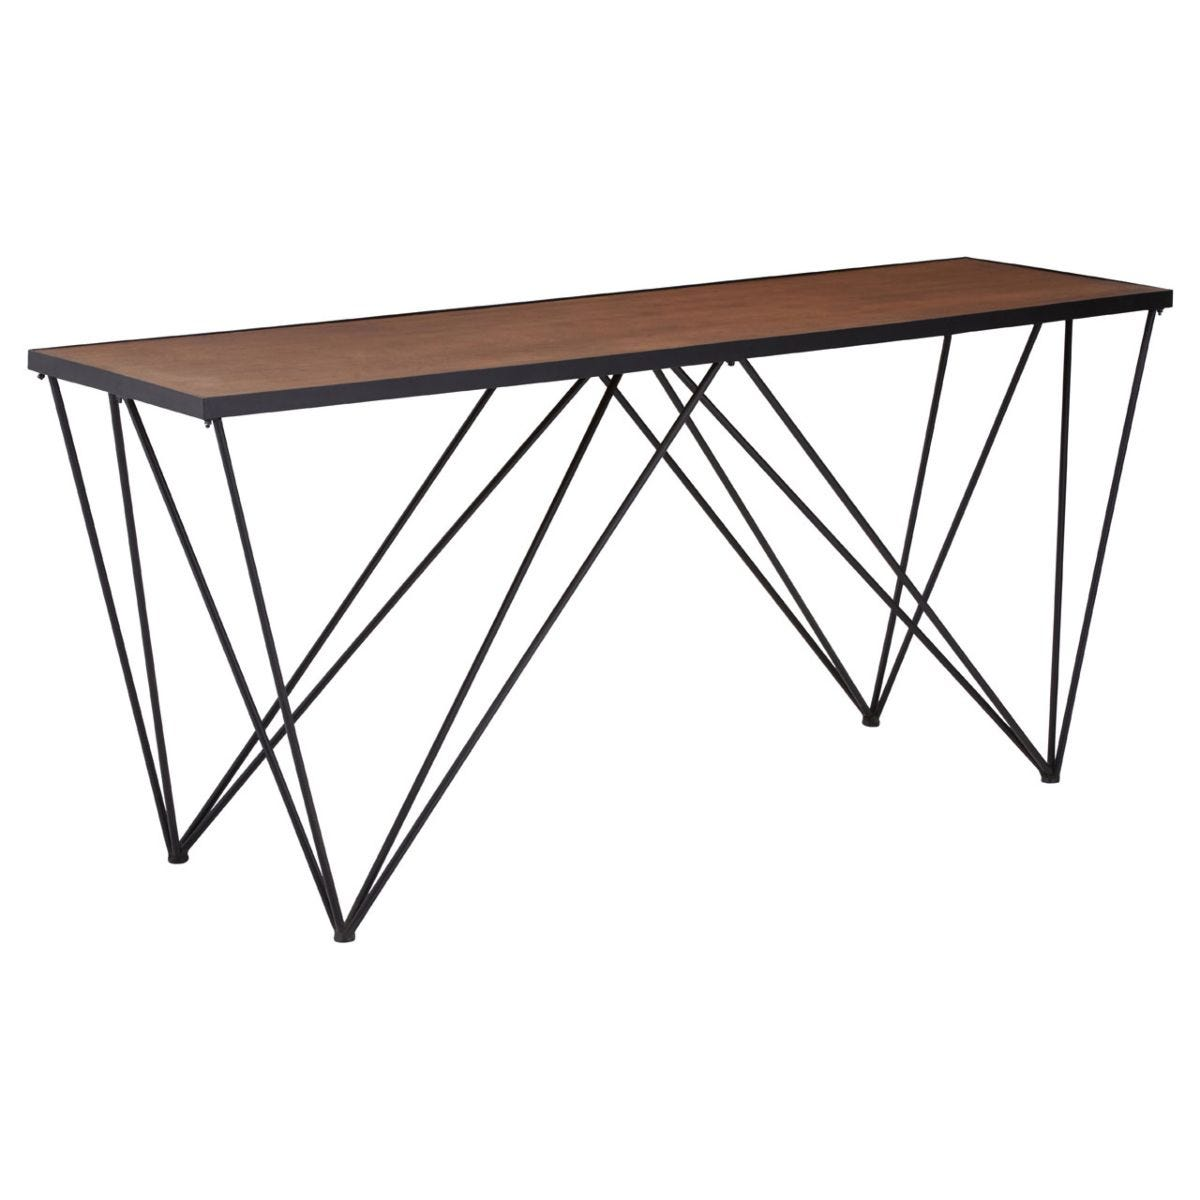 New Foundry Rectangular Fir Wood Console Table